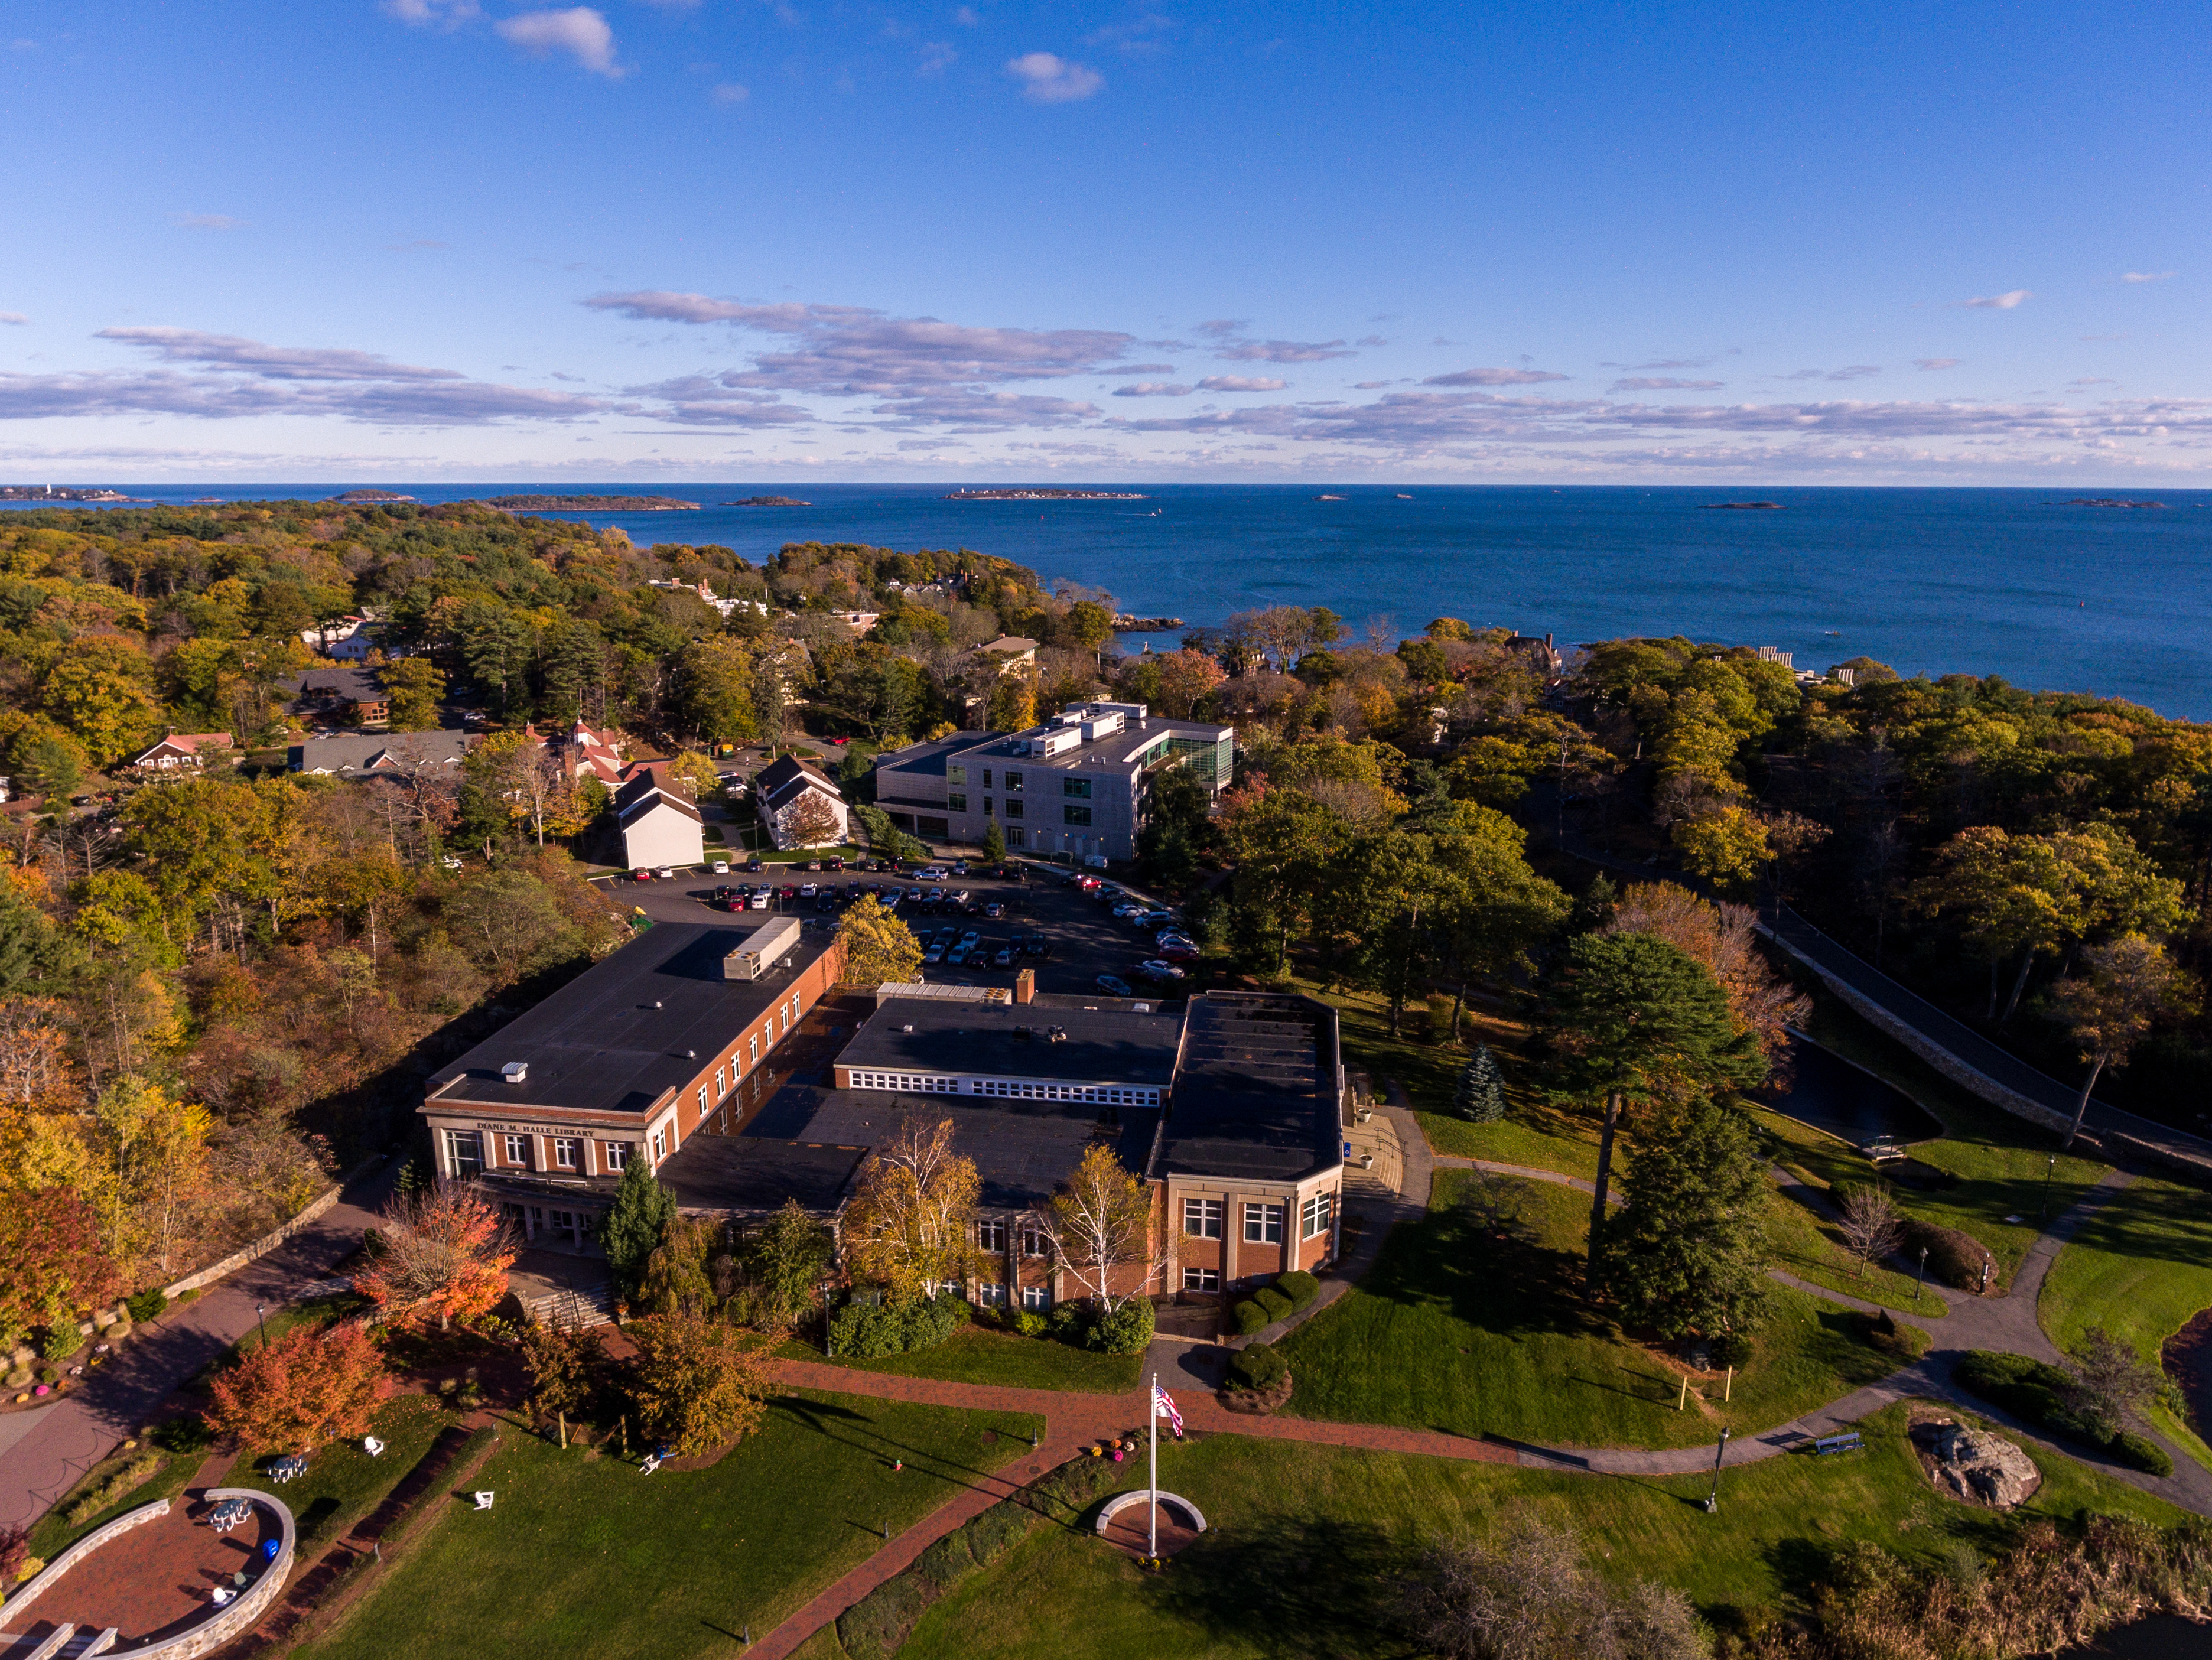 scenic aerial shot of campus with ocean on horizon